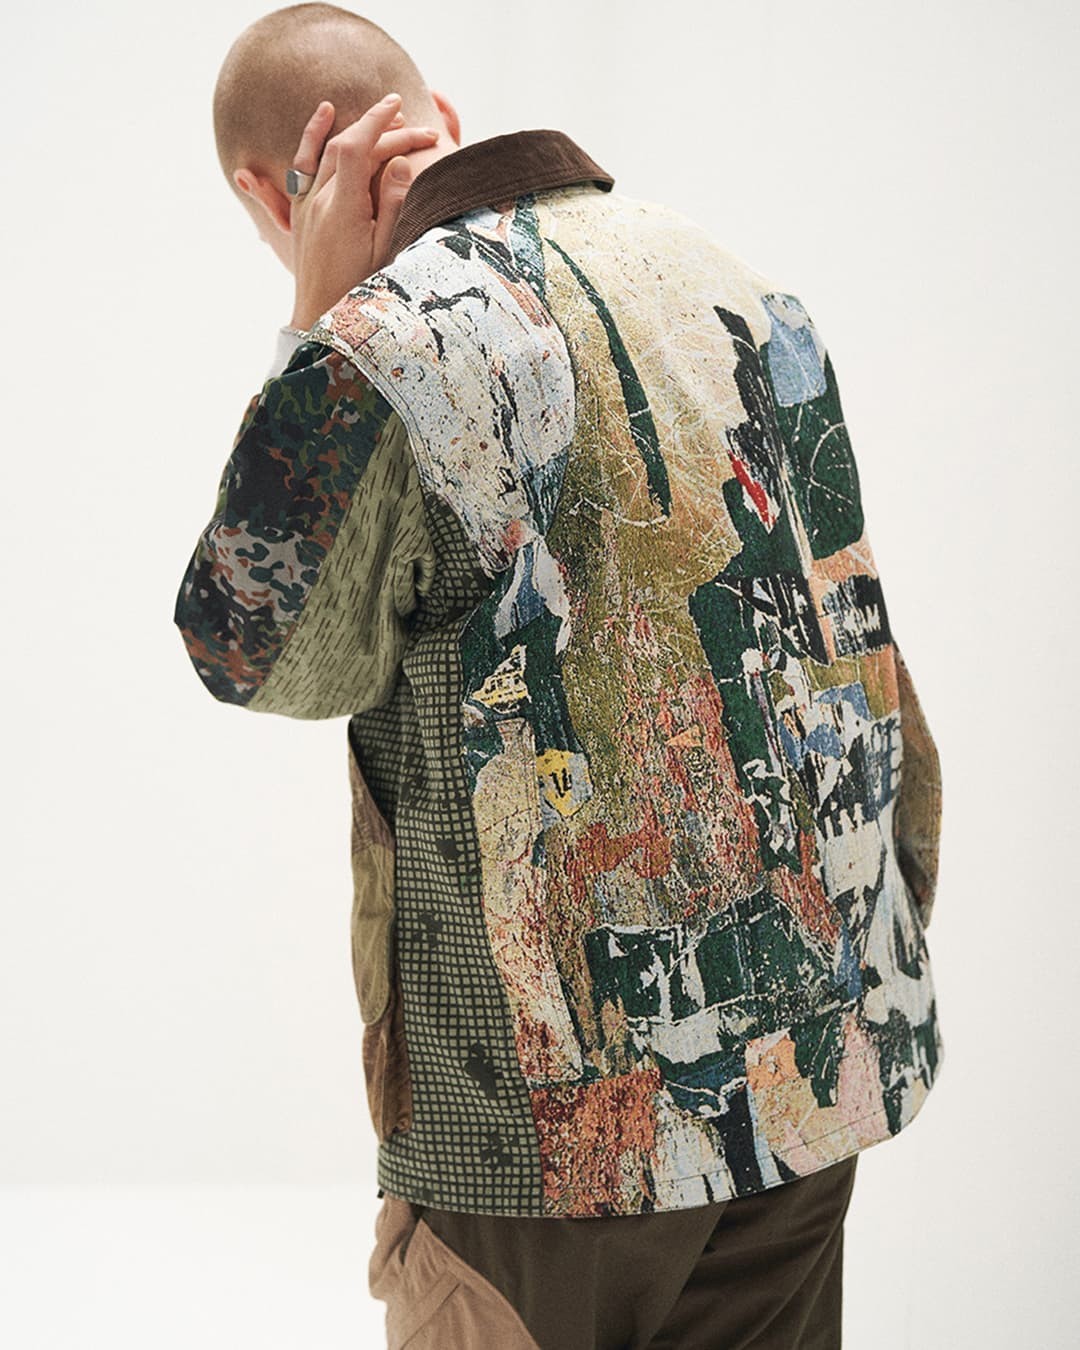 Hunting Jacket Collaboration with Jose Parla